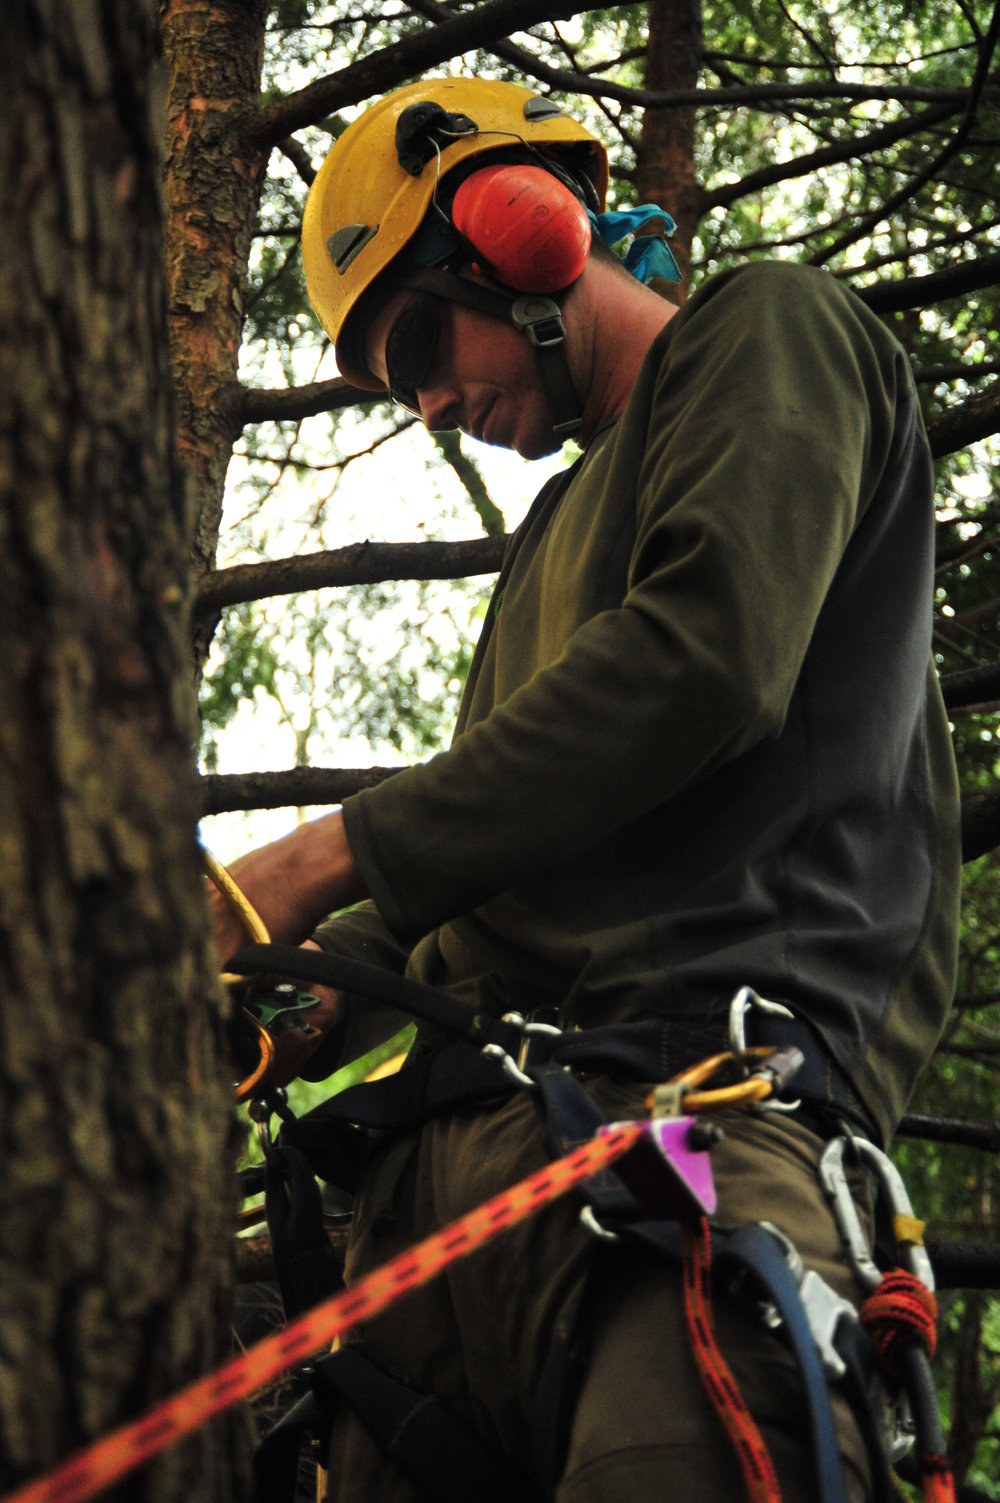 Safe tree work requires extensive knowledge of tree physics and biology, which can take years of experience and study to acquire.